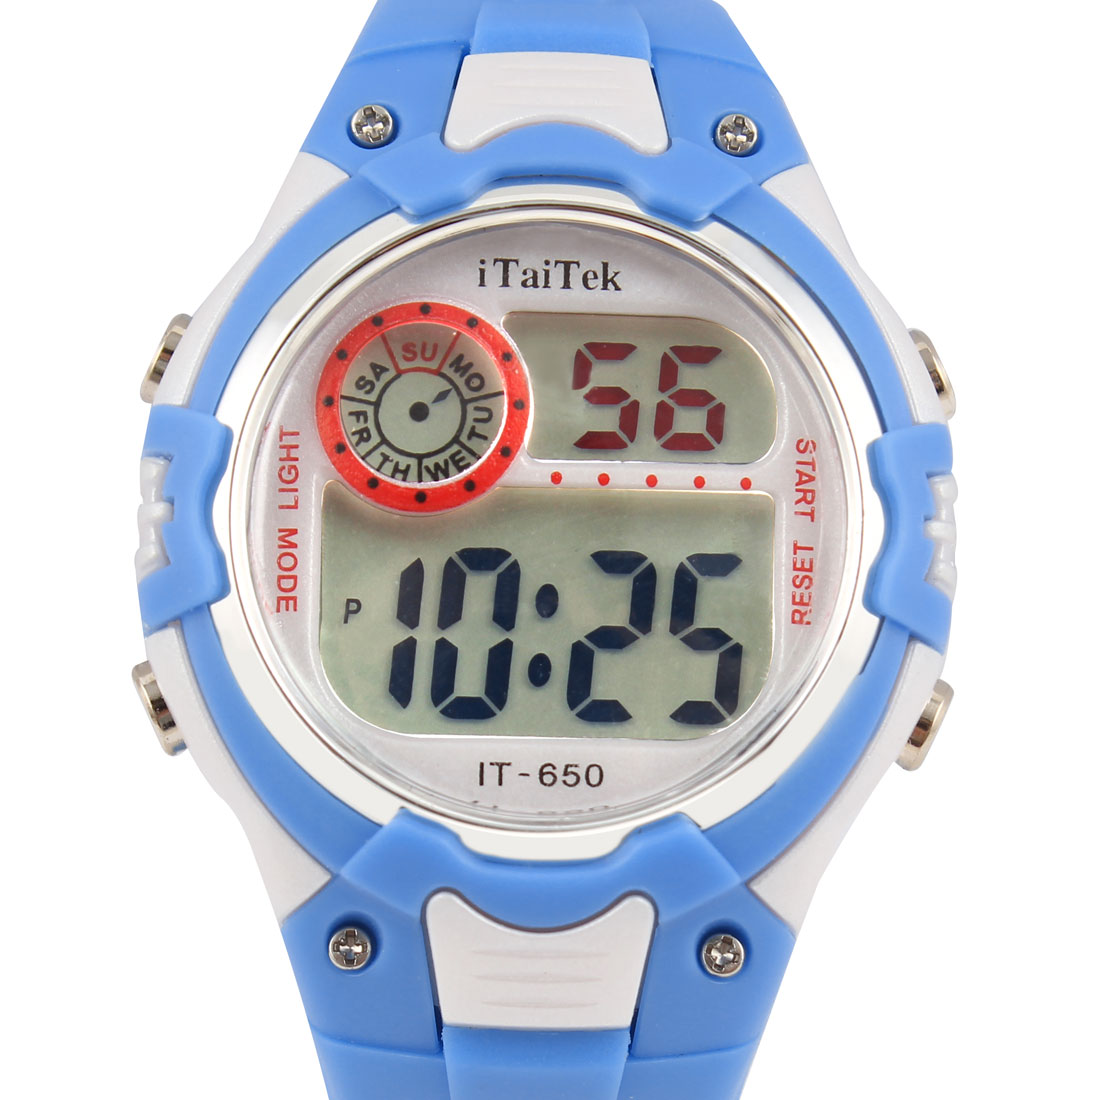 Blue White 4 Buttons Adjustable Wristband Digital Display Sports Watch w Case